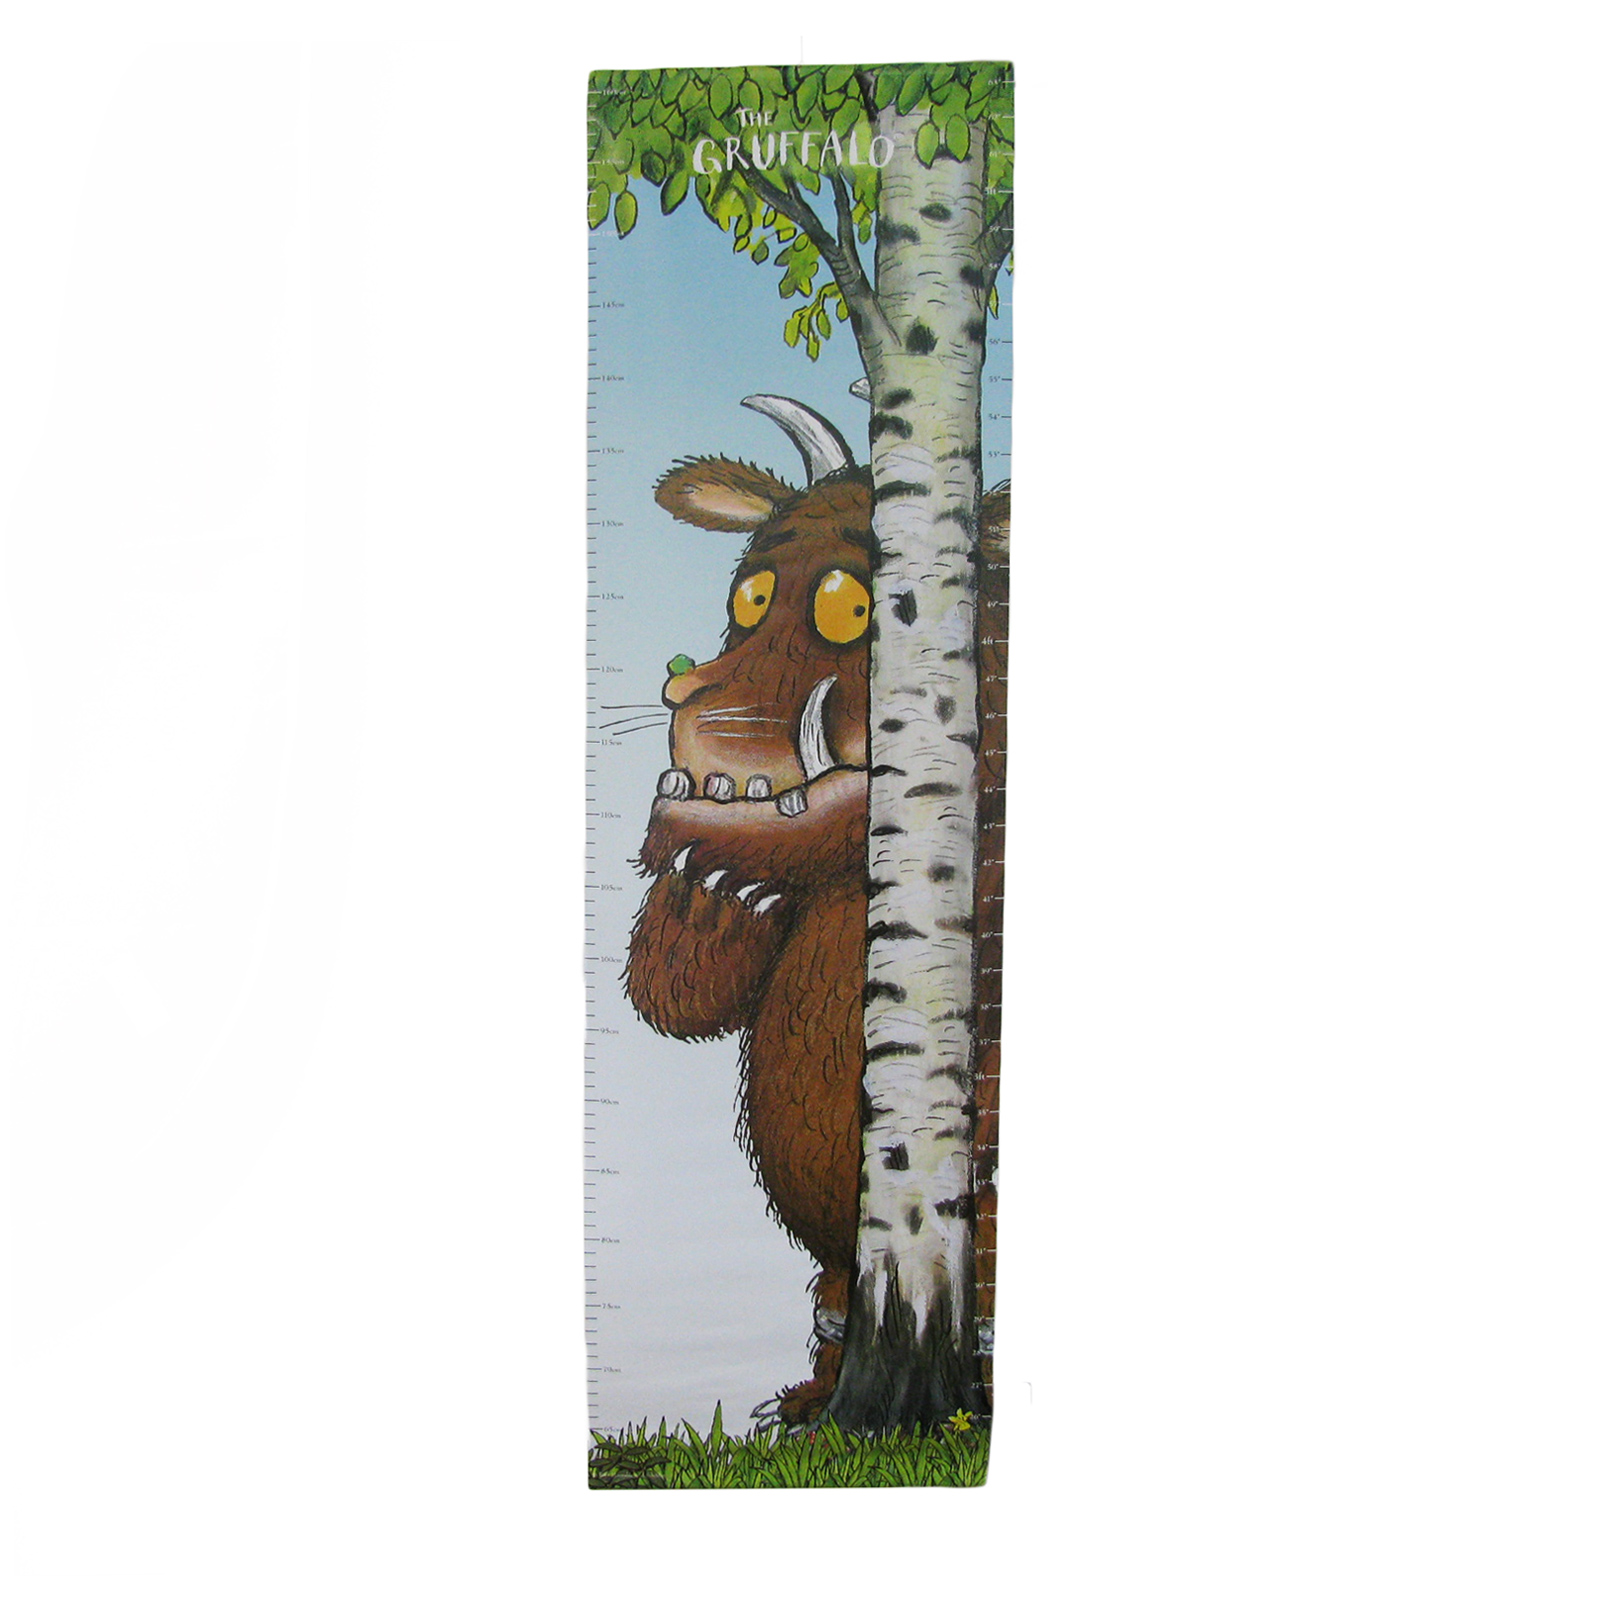 Gruffalo childrens bedroom 160cm height chart 10 stickers gift thumbnail 1 thumbnail 2 amipublicfo Image collections